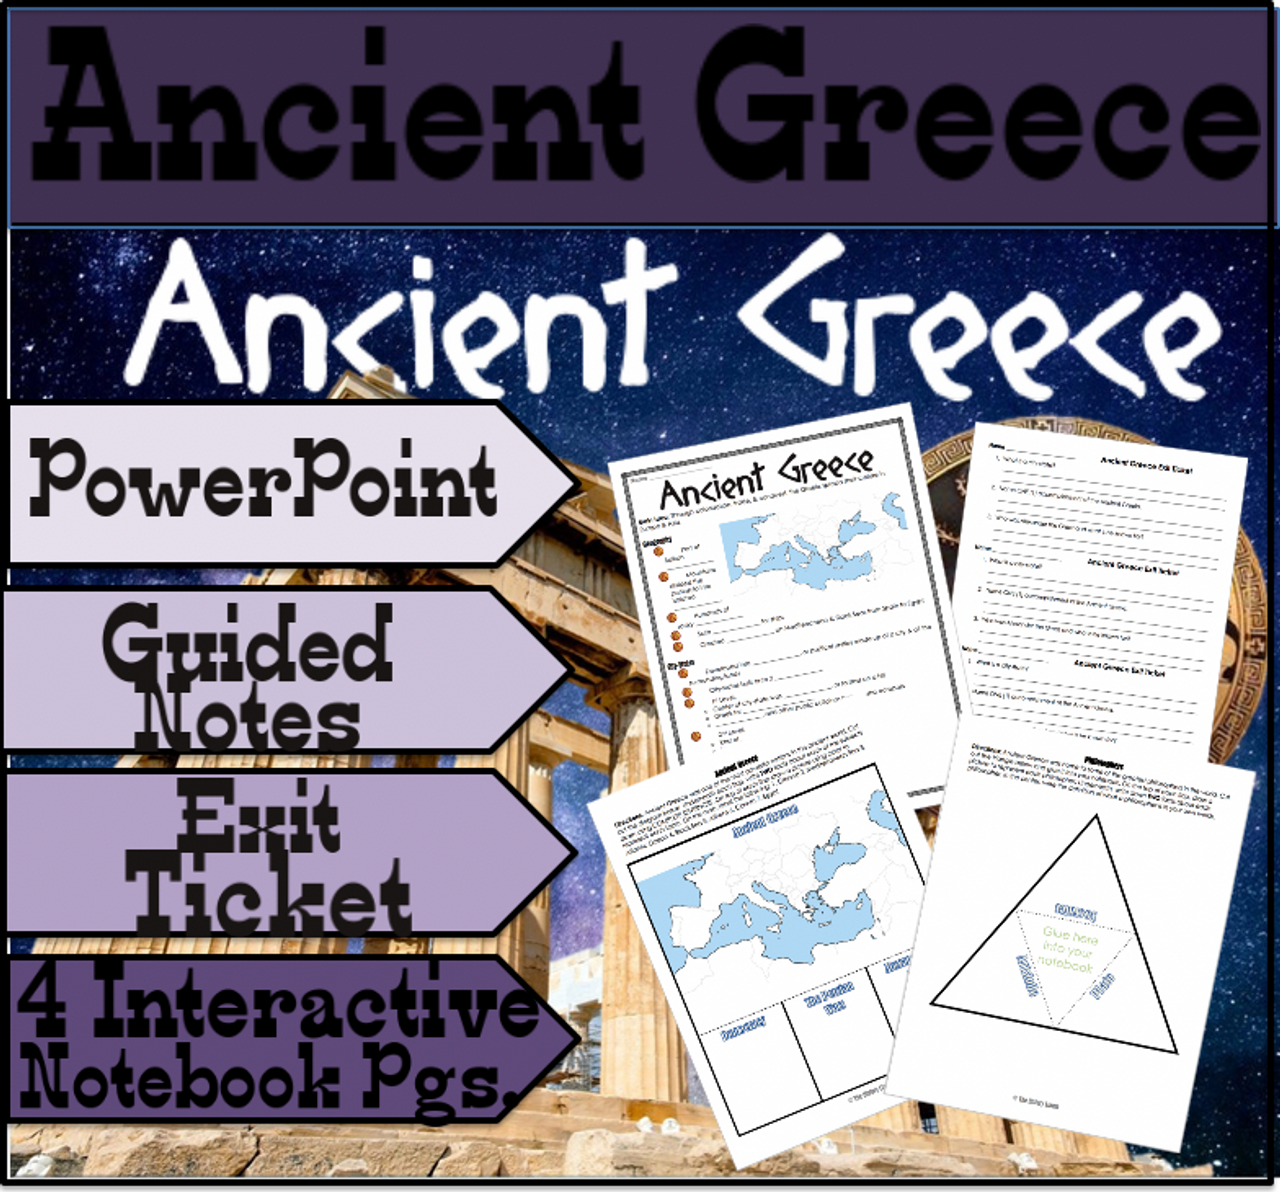 Ancient Greece PowerPoint + Interactive Notebook Pages